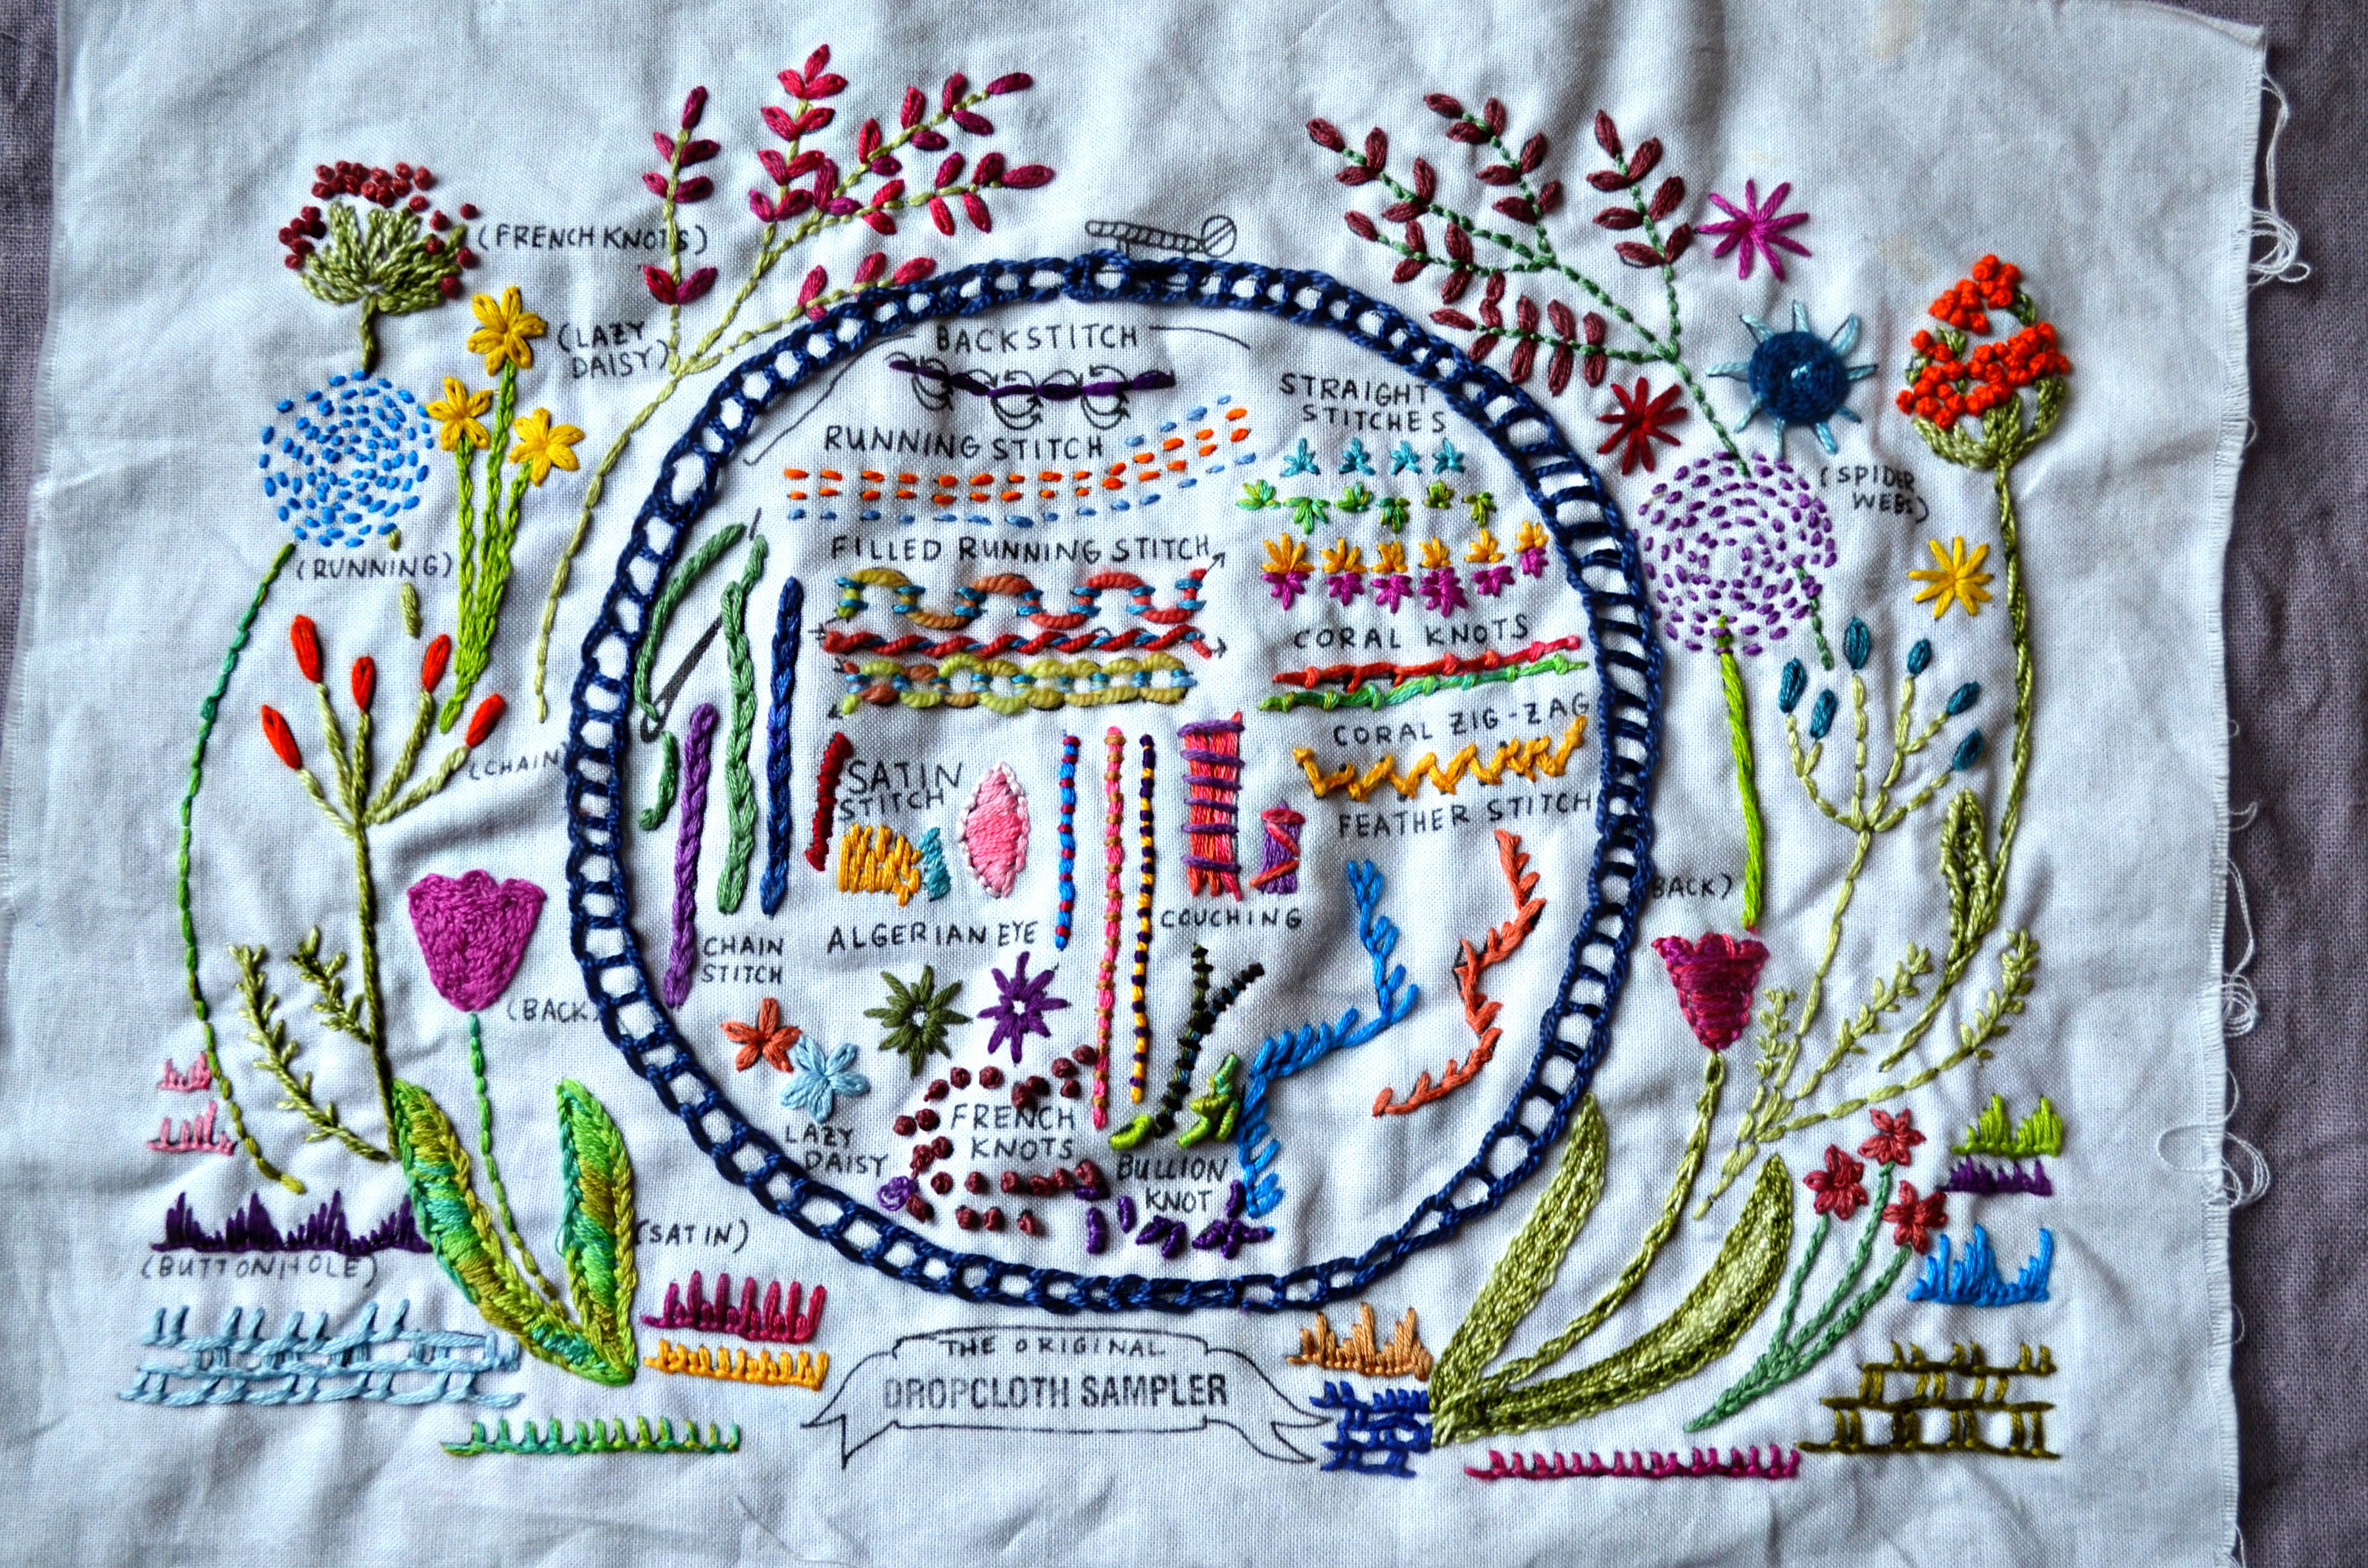 Kb dropcloth embroidery knitty